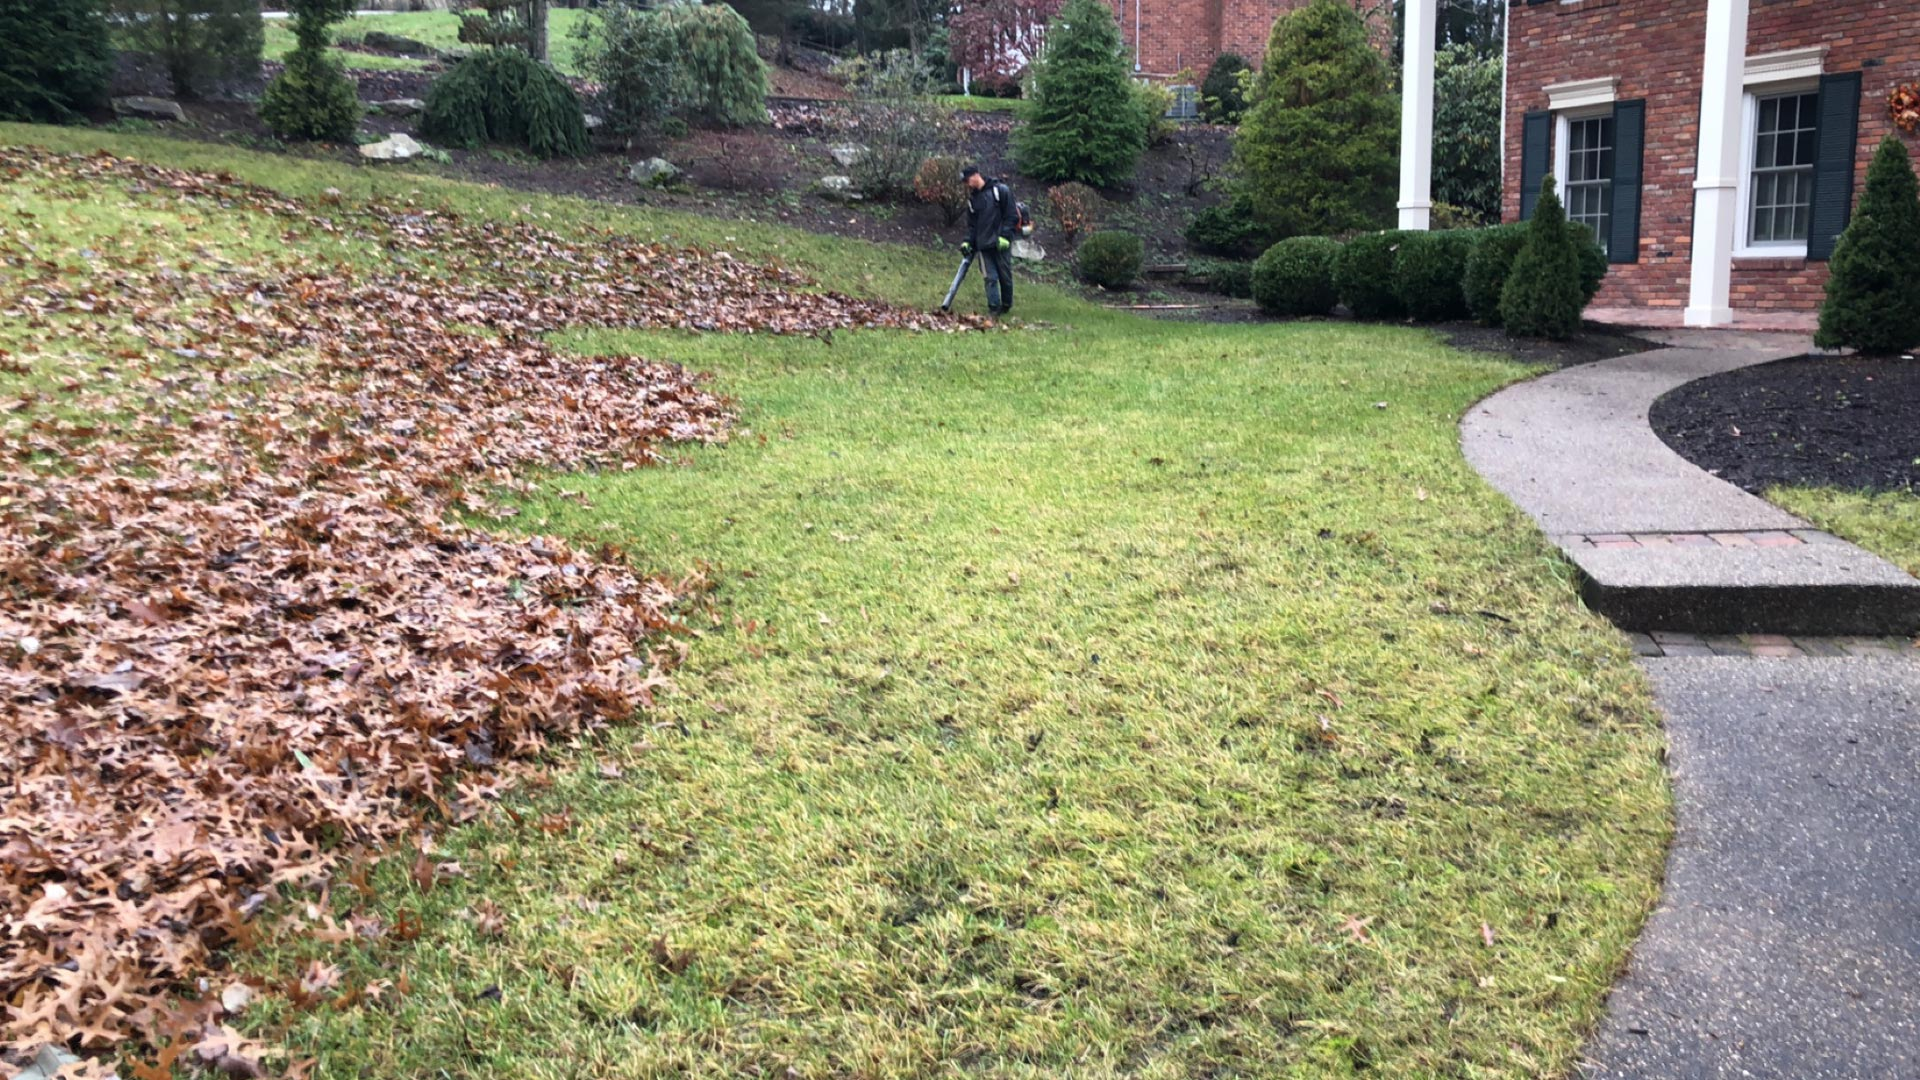 Leaves being cleaned up during the fall season in McMurray, PA.